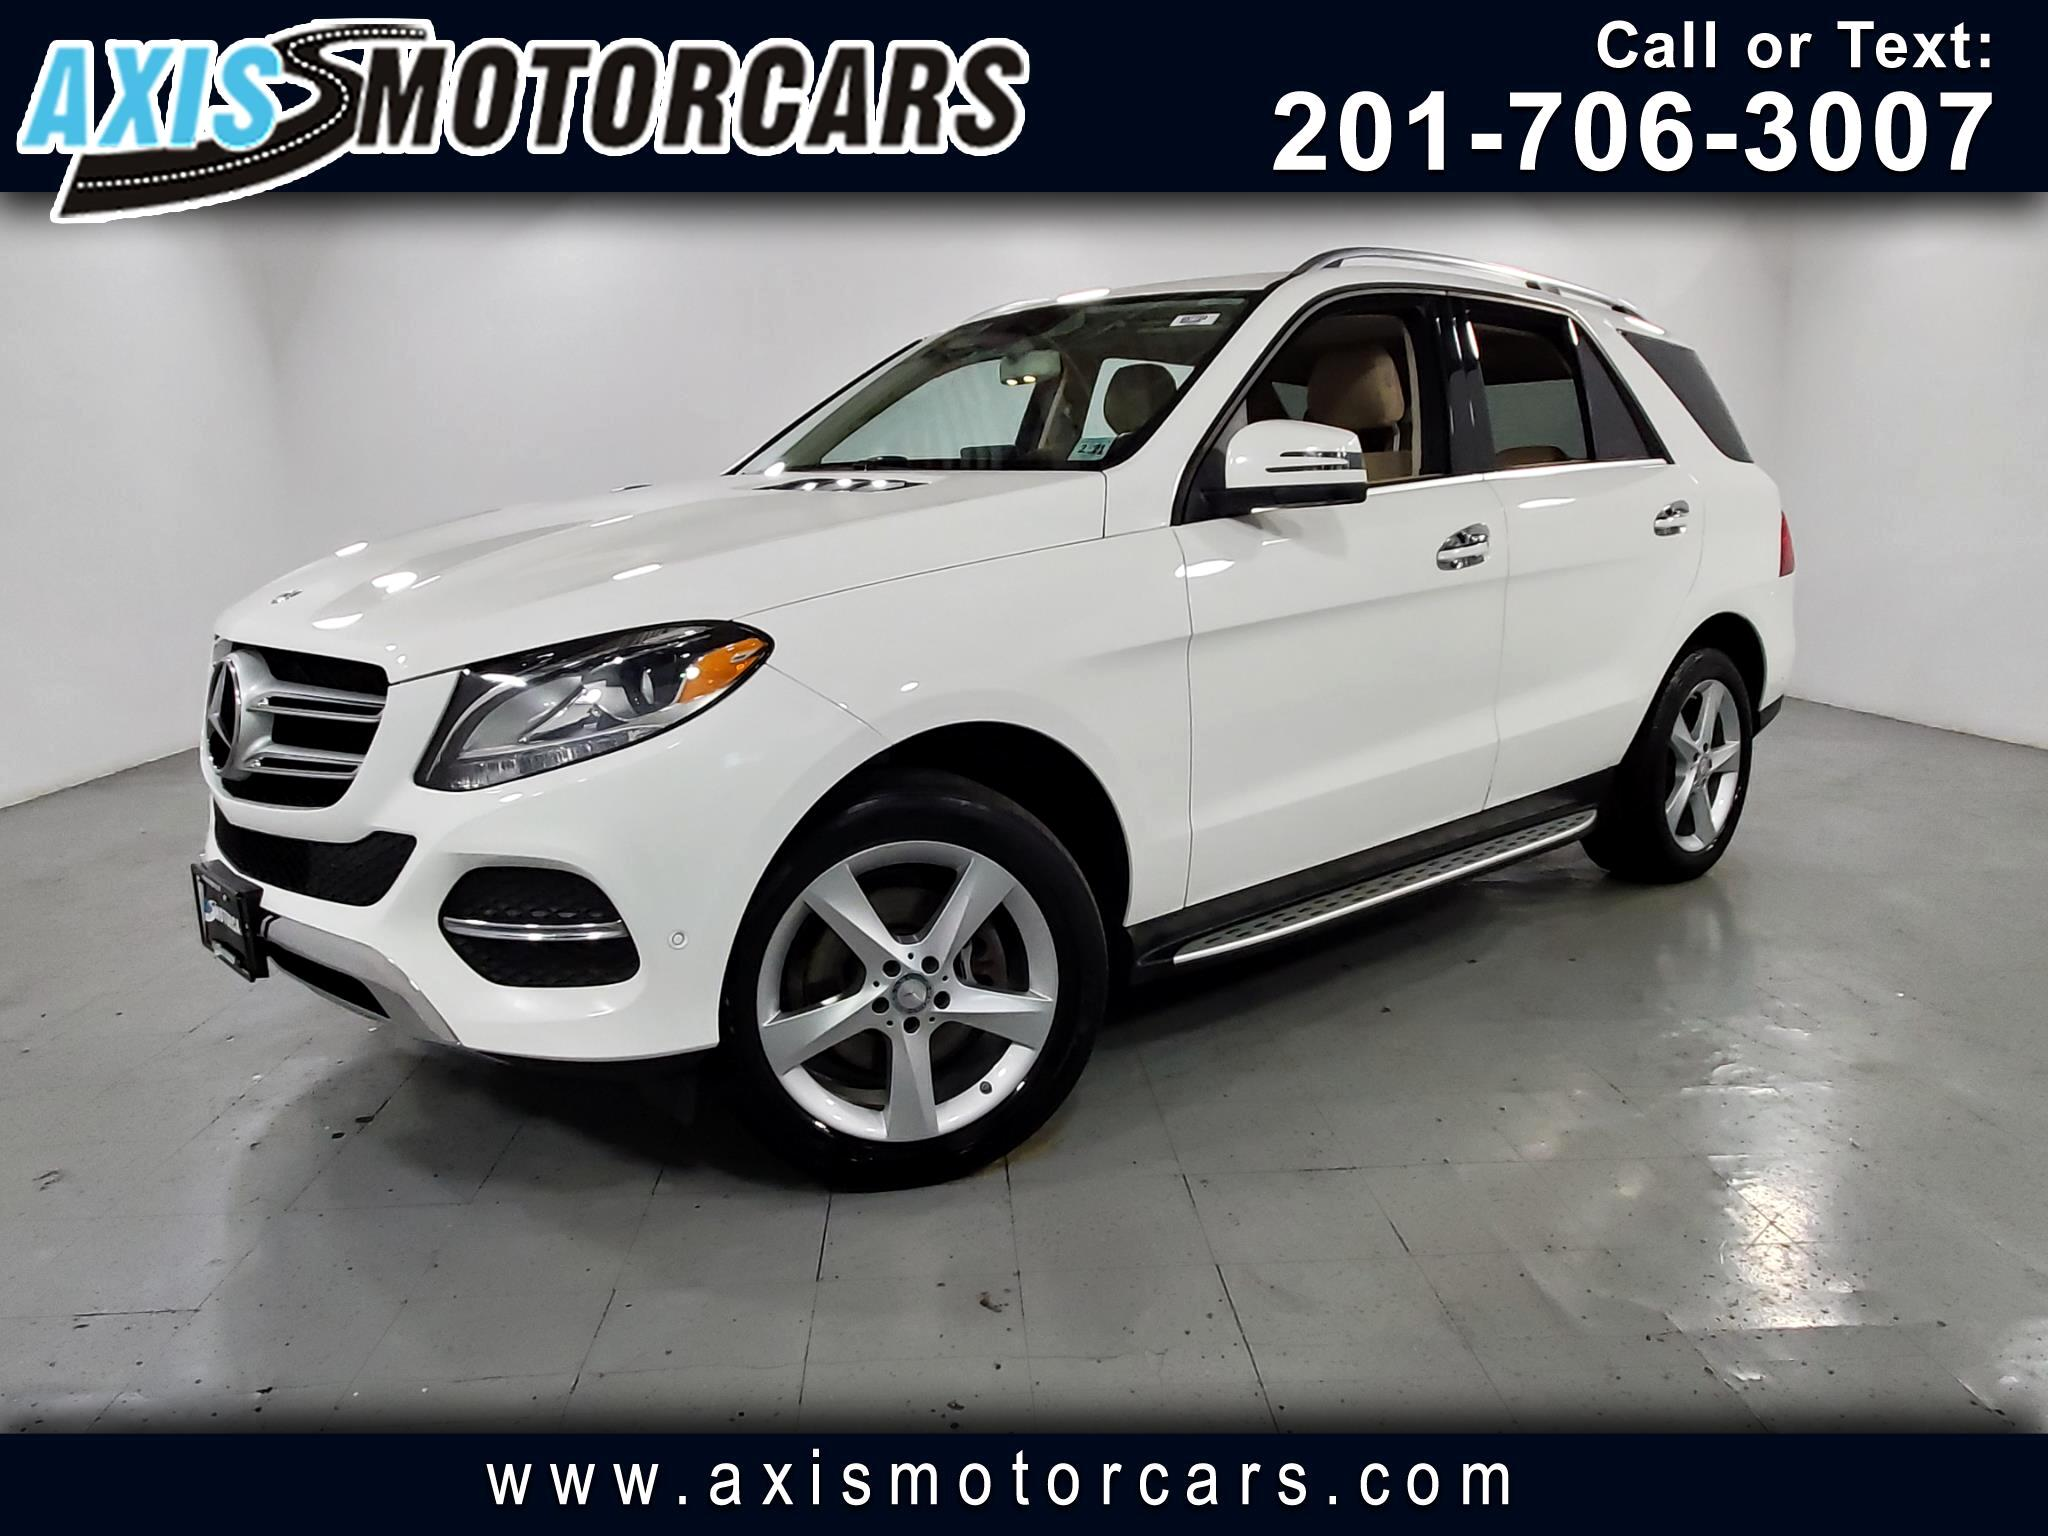 2016 Mercedes-Benz GLE 350 w/Navigation Backup Camera 360